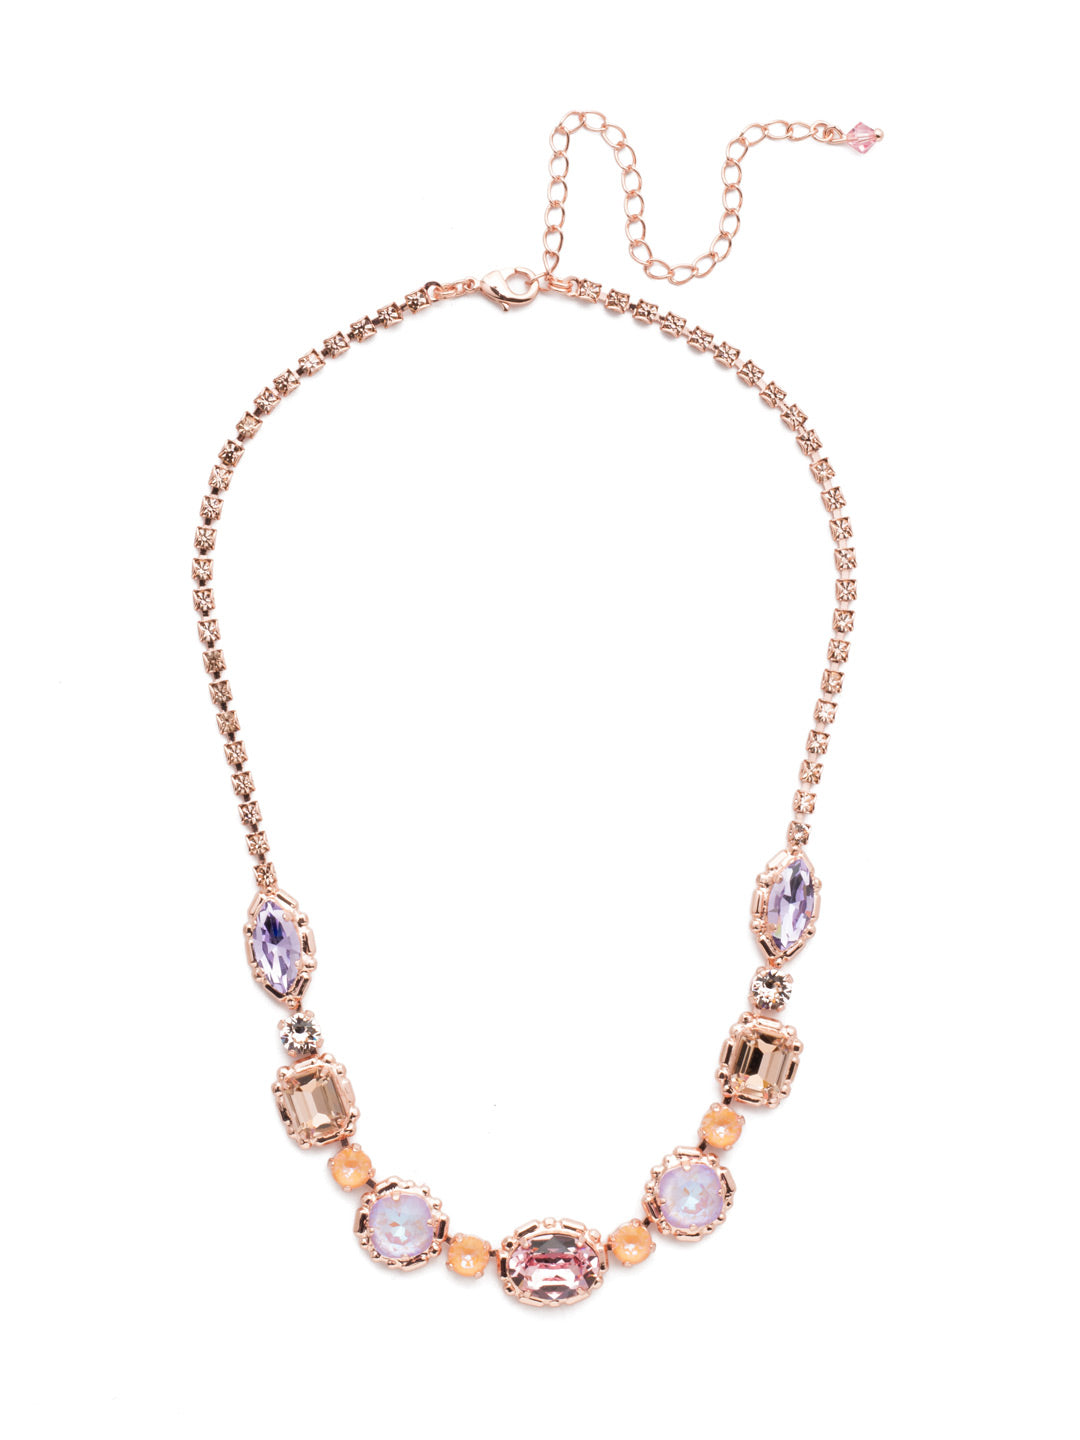 Cardoon Tennis Necklace - NDX7RGLVP